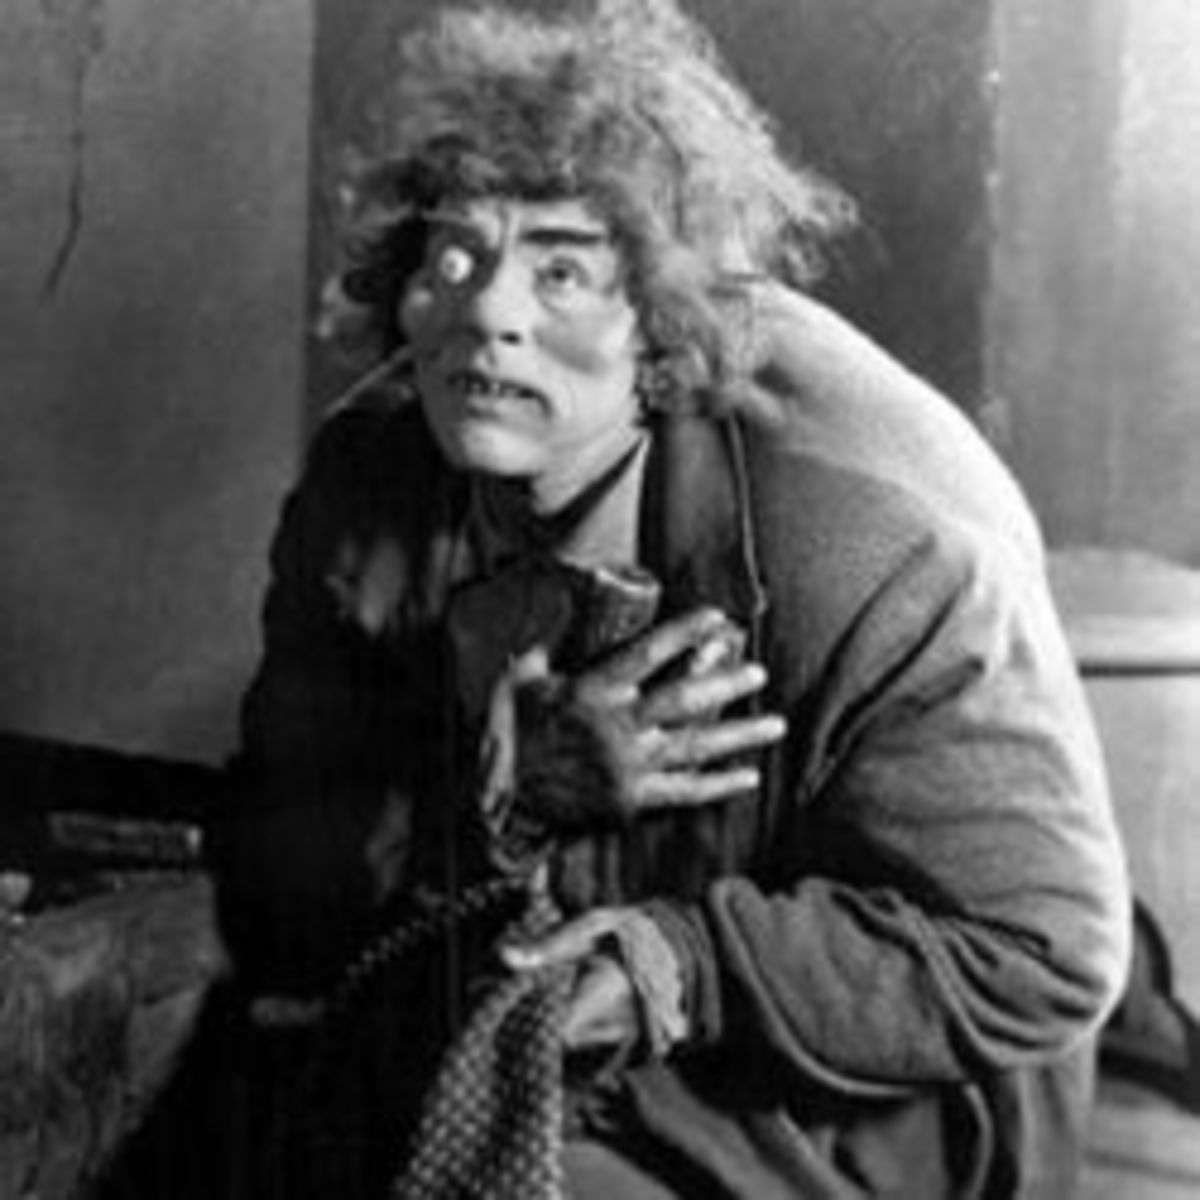 Lon Chaney as Quasimodo